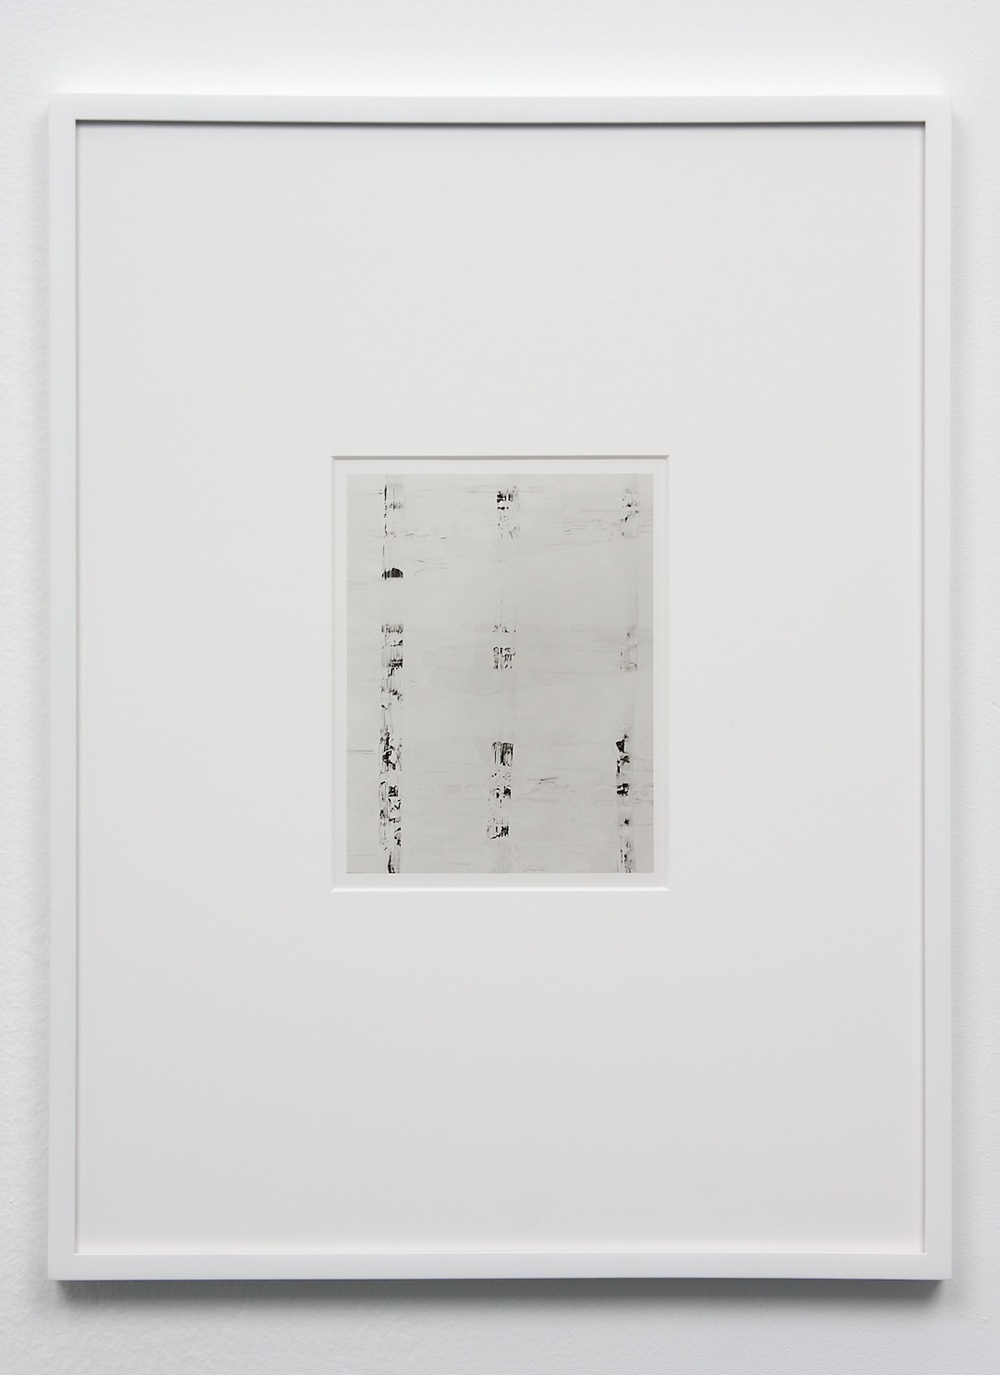 Anthony Pearson  Untitled (Solarization)  2010 Framed solarized silver gelatin photograph 17 ½h x 13 ¼w in AP234